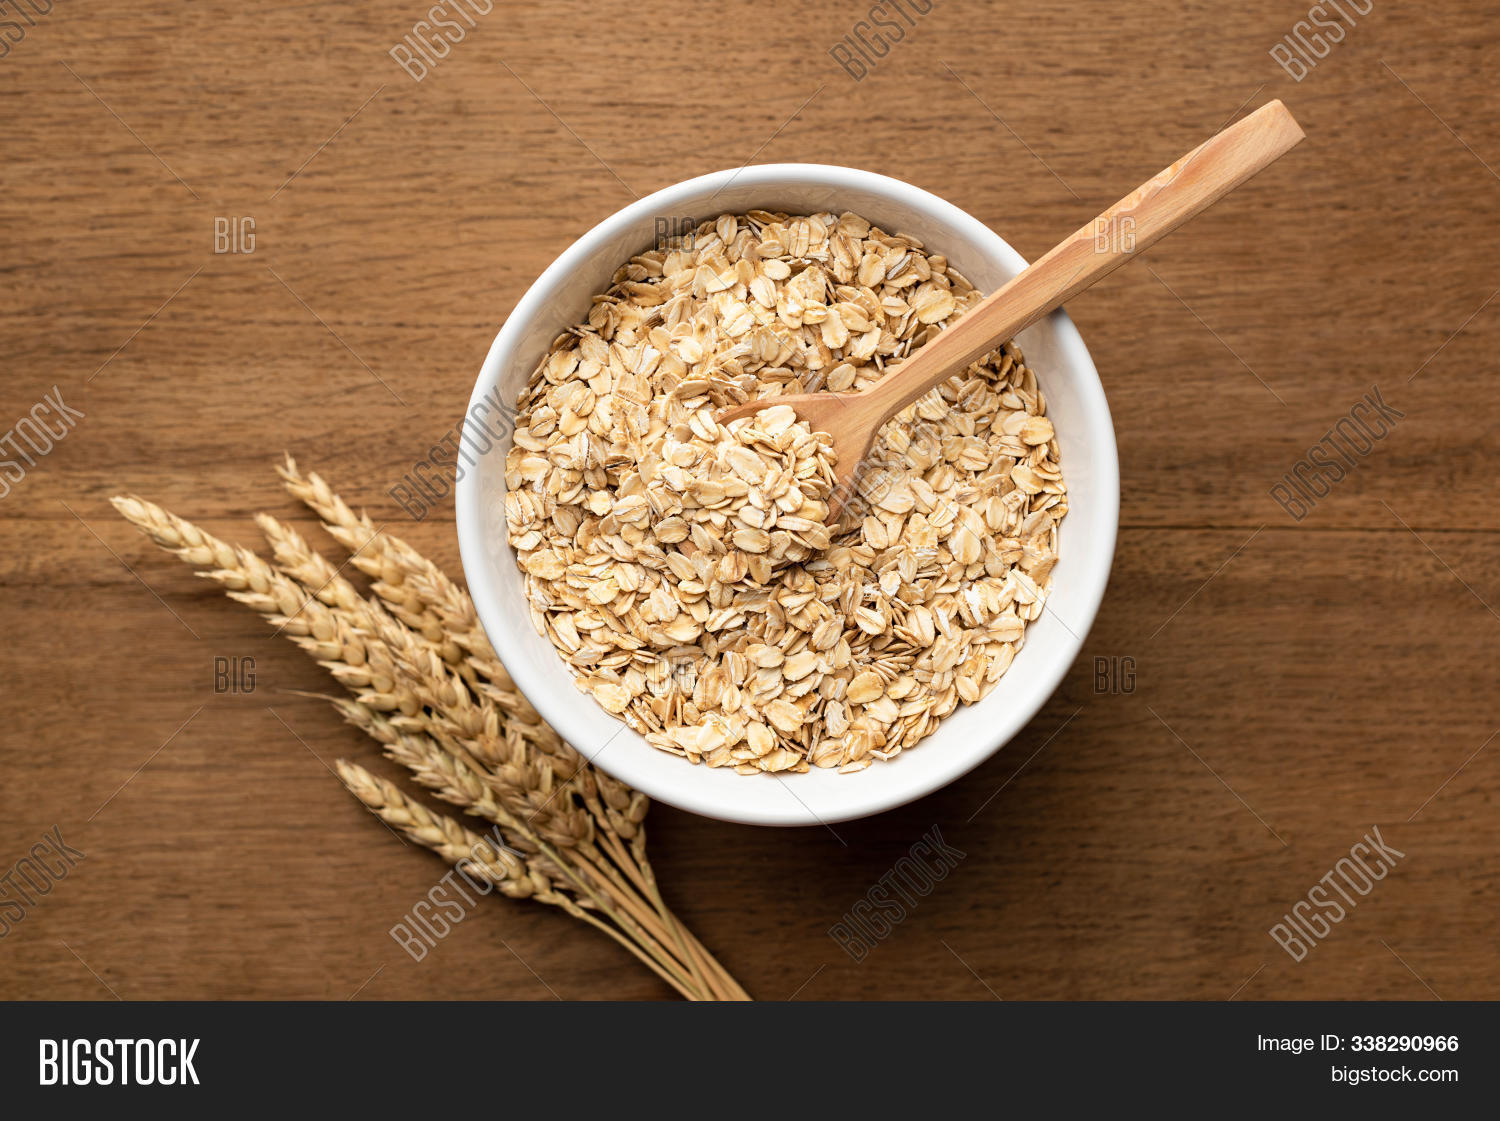 agriculture,background,bowl,breakfast,brown,cereal,close,closeup,cuisine,culture,detail,diet,dry,fiber,flake,food,golden,grain,groat,health,healthy,heap,ingredient,isolated,kernel,meal,natural,nobody,nutrition,oat,oatmeal,plant,porcelain,porridge,portion,raw,ripe,rolled,seed,snack,spill,stem,summer,texture,uncooked,white,whole,wooden